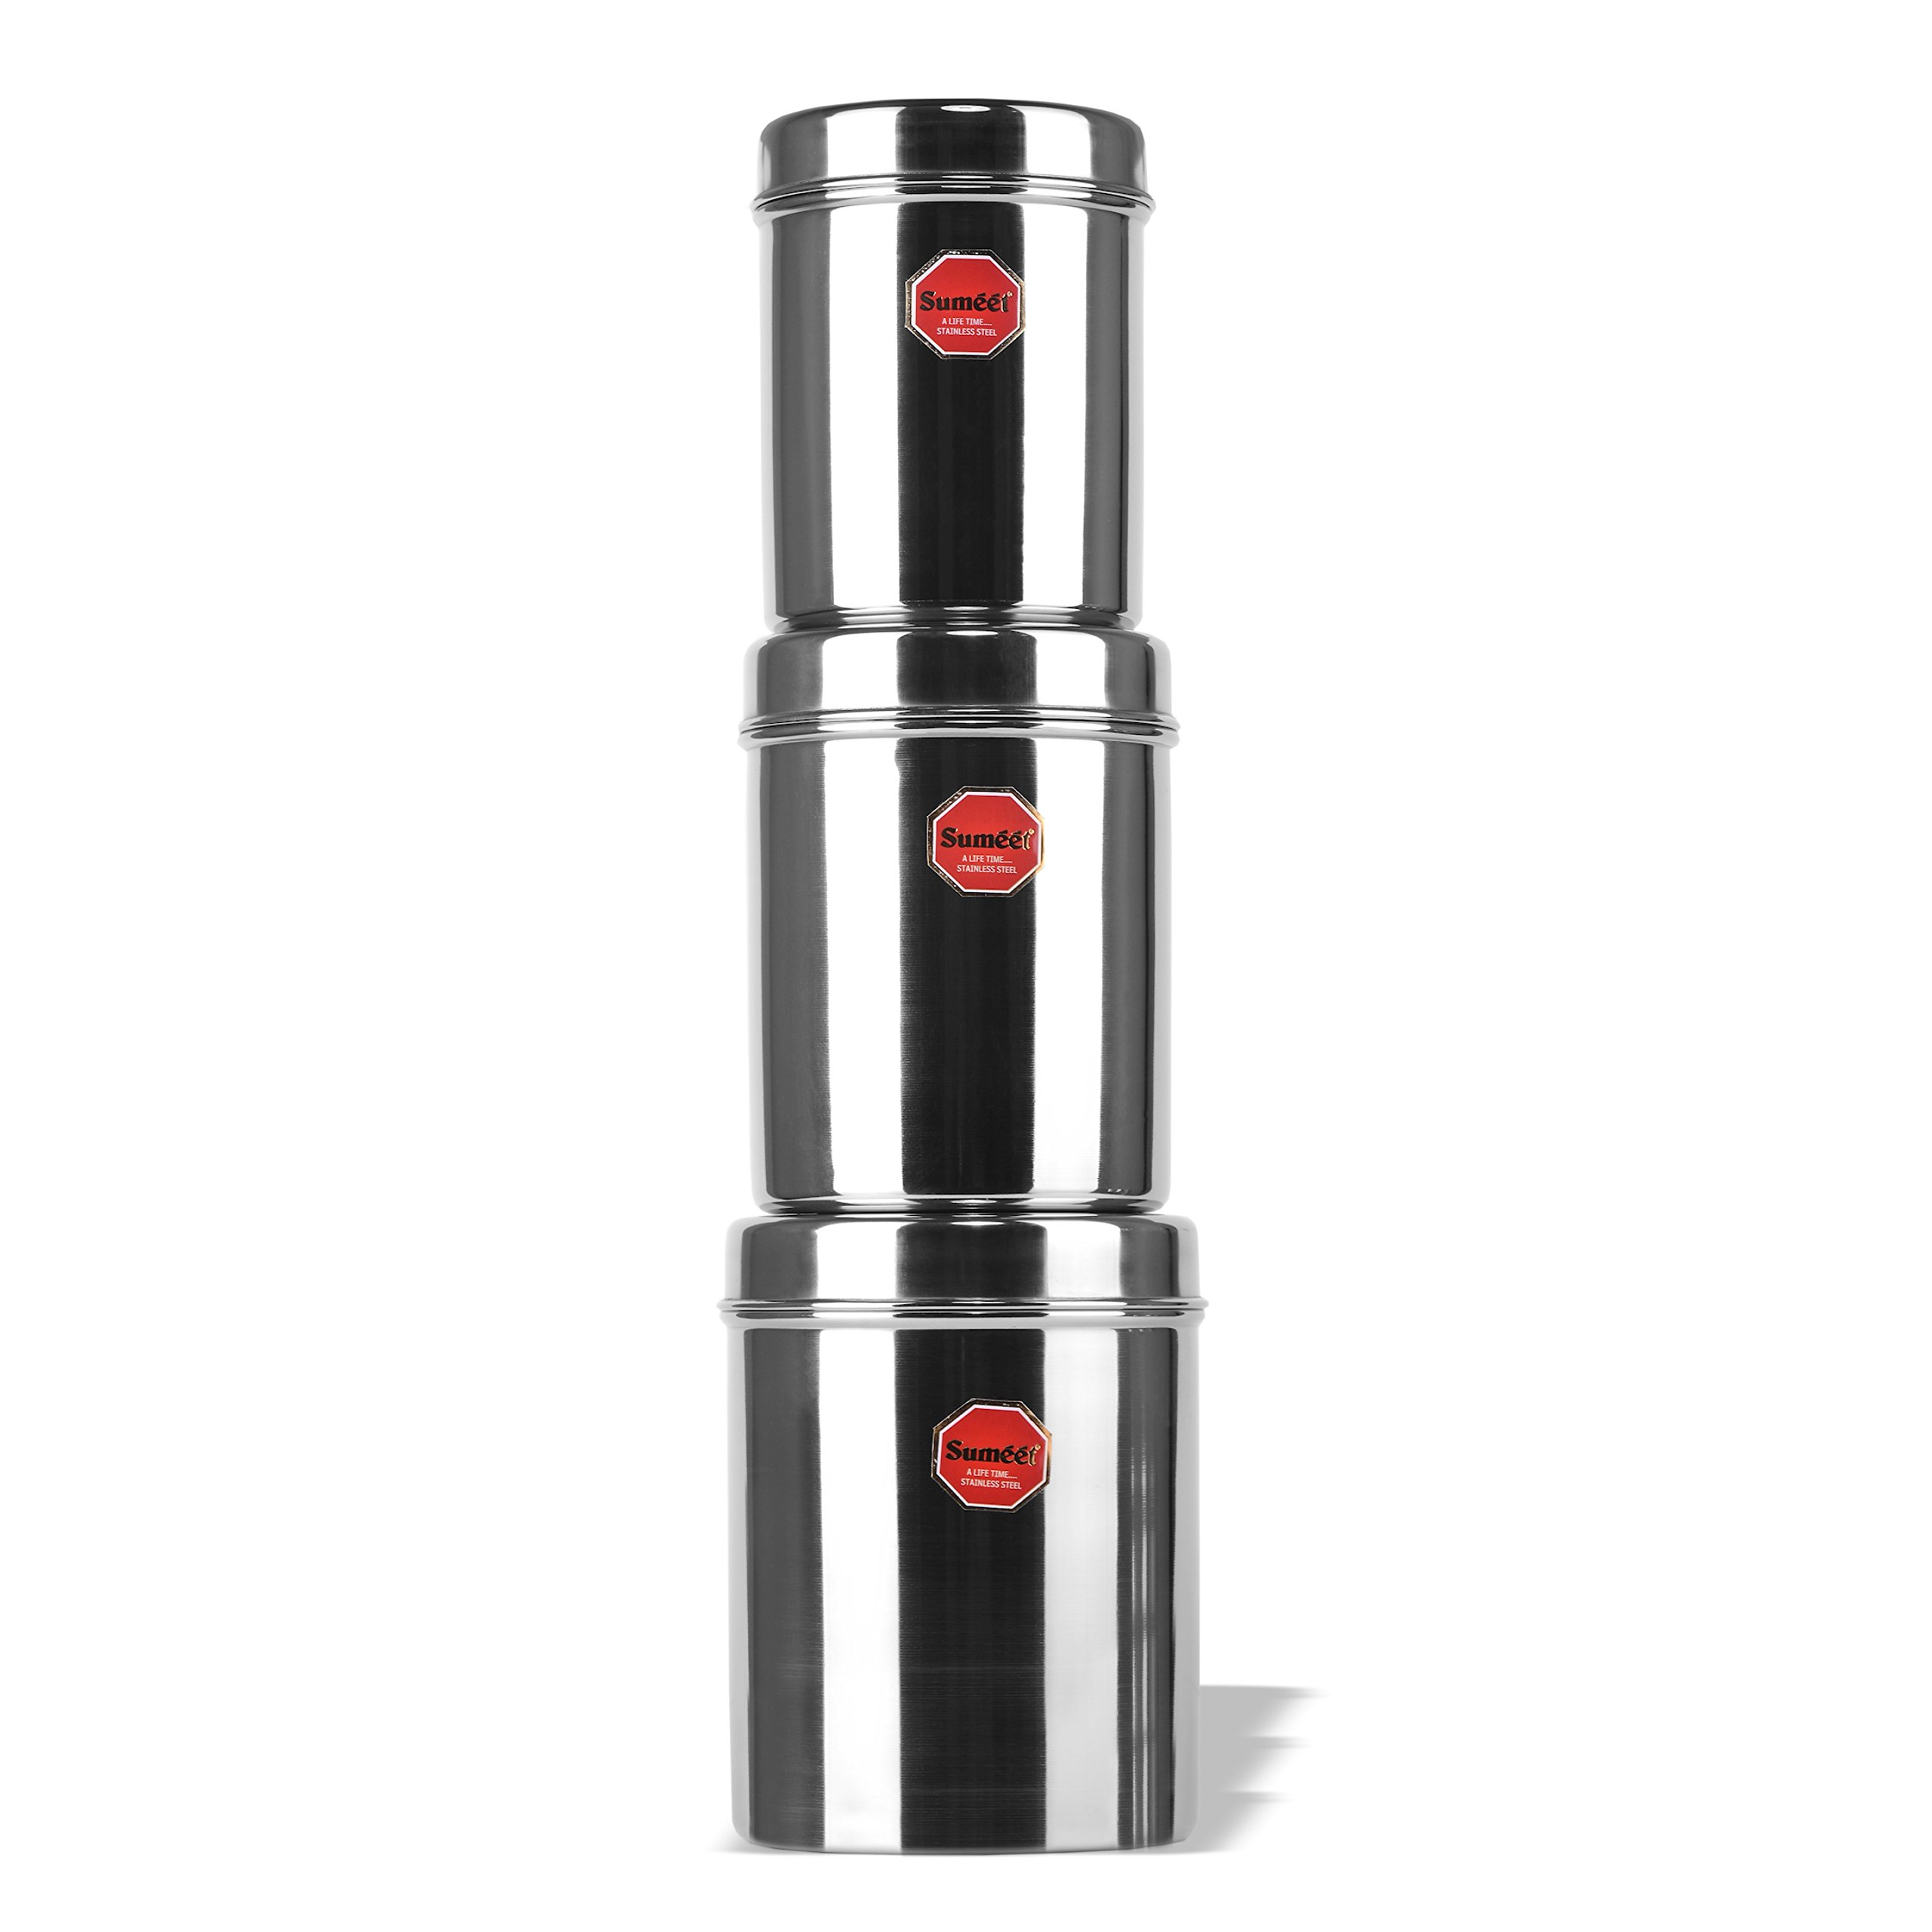 Sumeet Stainless Steel Vertical Canisters/Ubha Dabba/Storage Containers Set of 3Pcs (No. 10 To No. 12) (900ml, 1.250 Ltr, 1.6 Ltr)